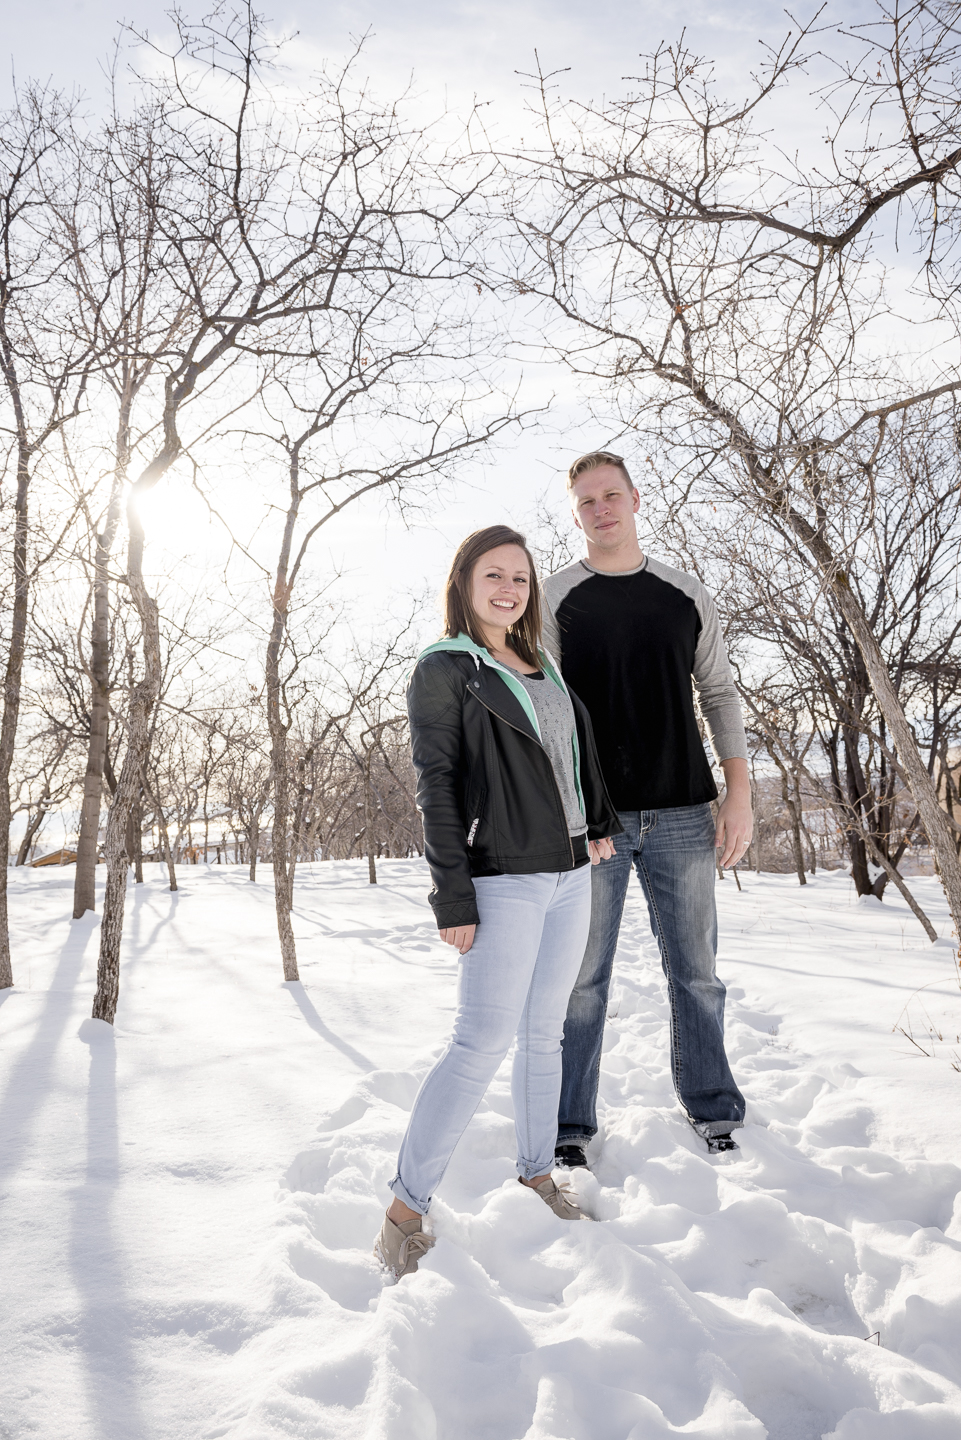 savage_couple_portrait_snow_pine_utah_Christin-7.jpg